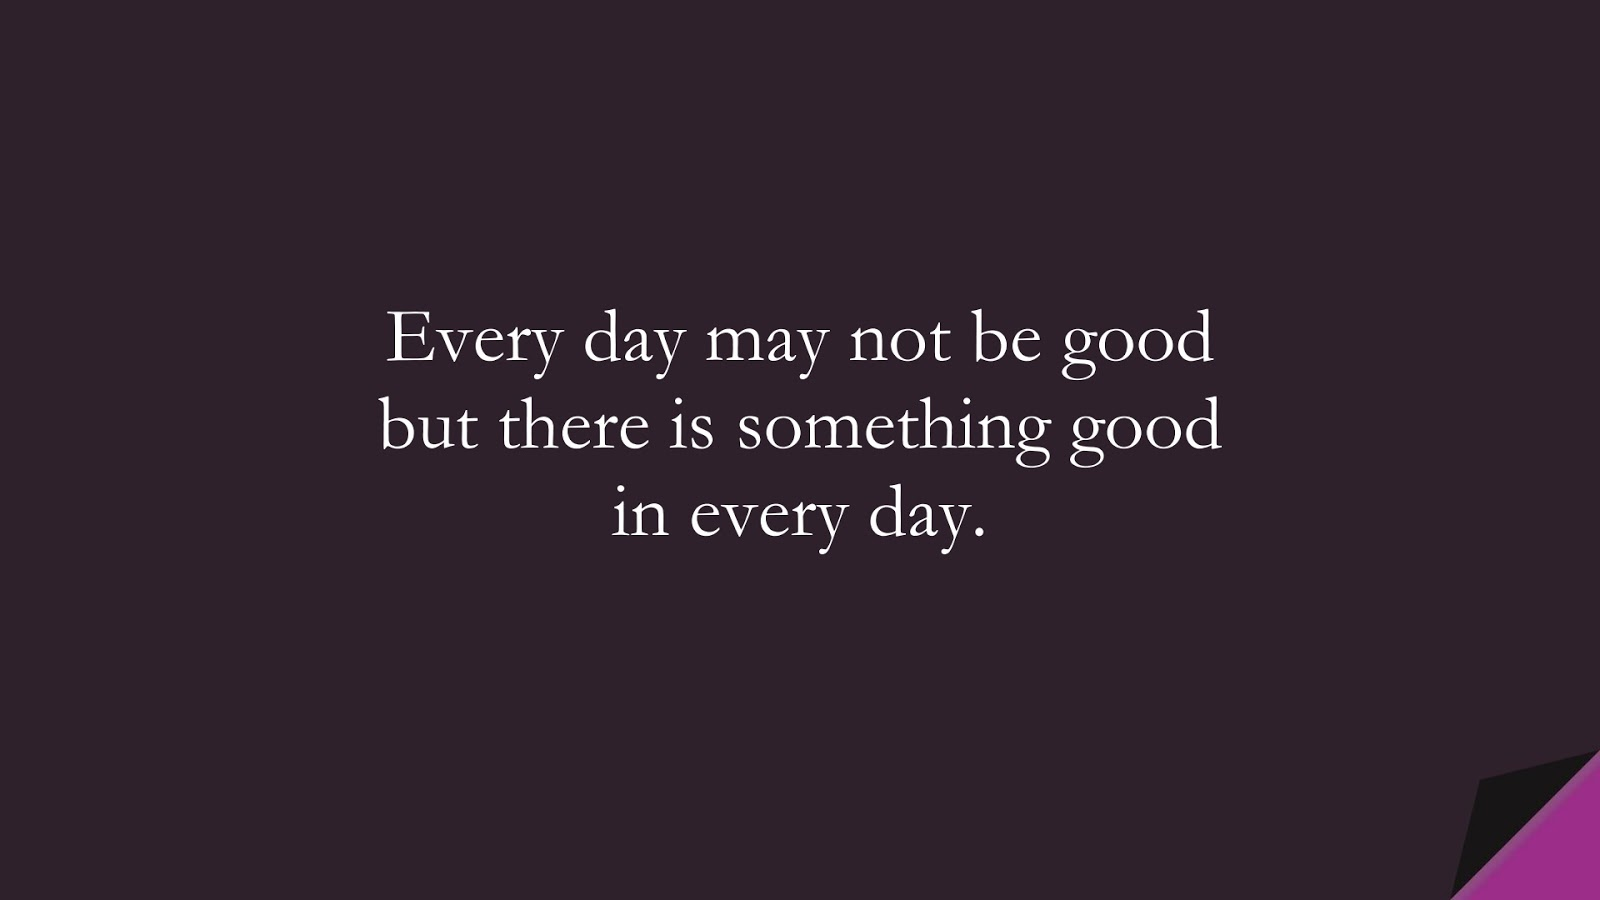 Every day may not be good but there is something good in every day.FALSE